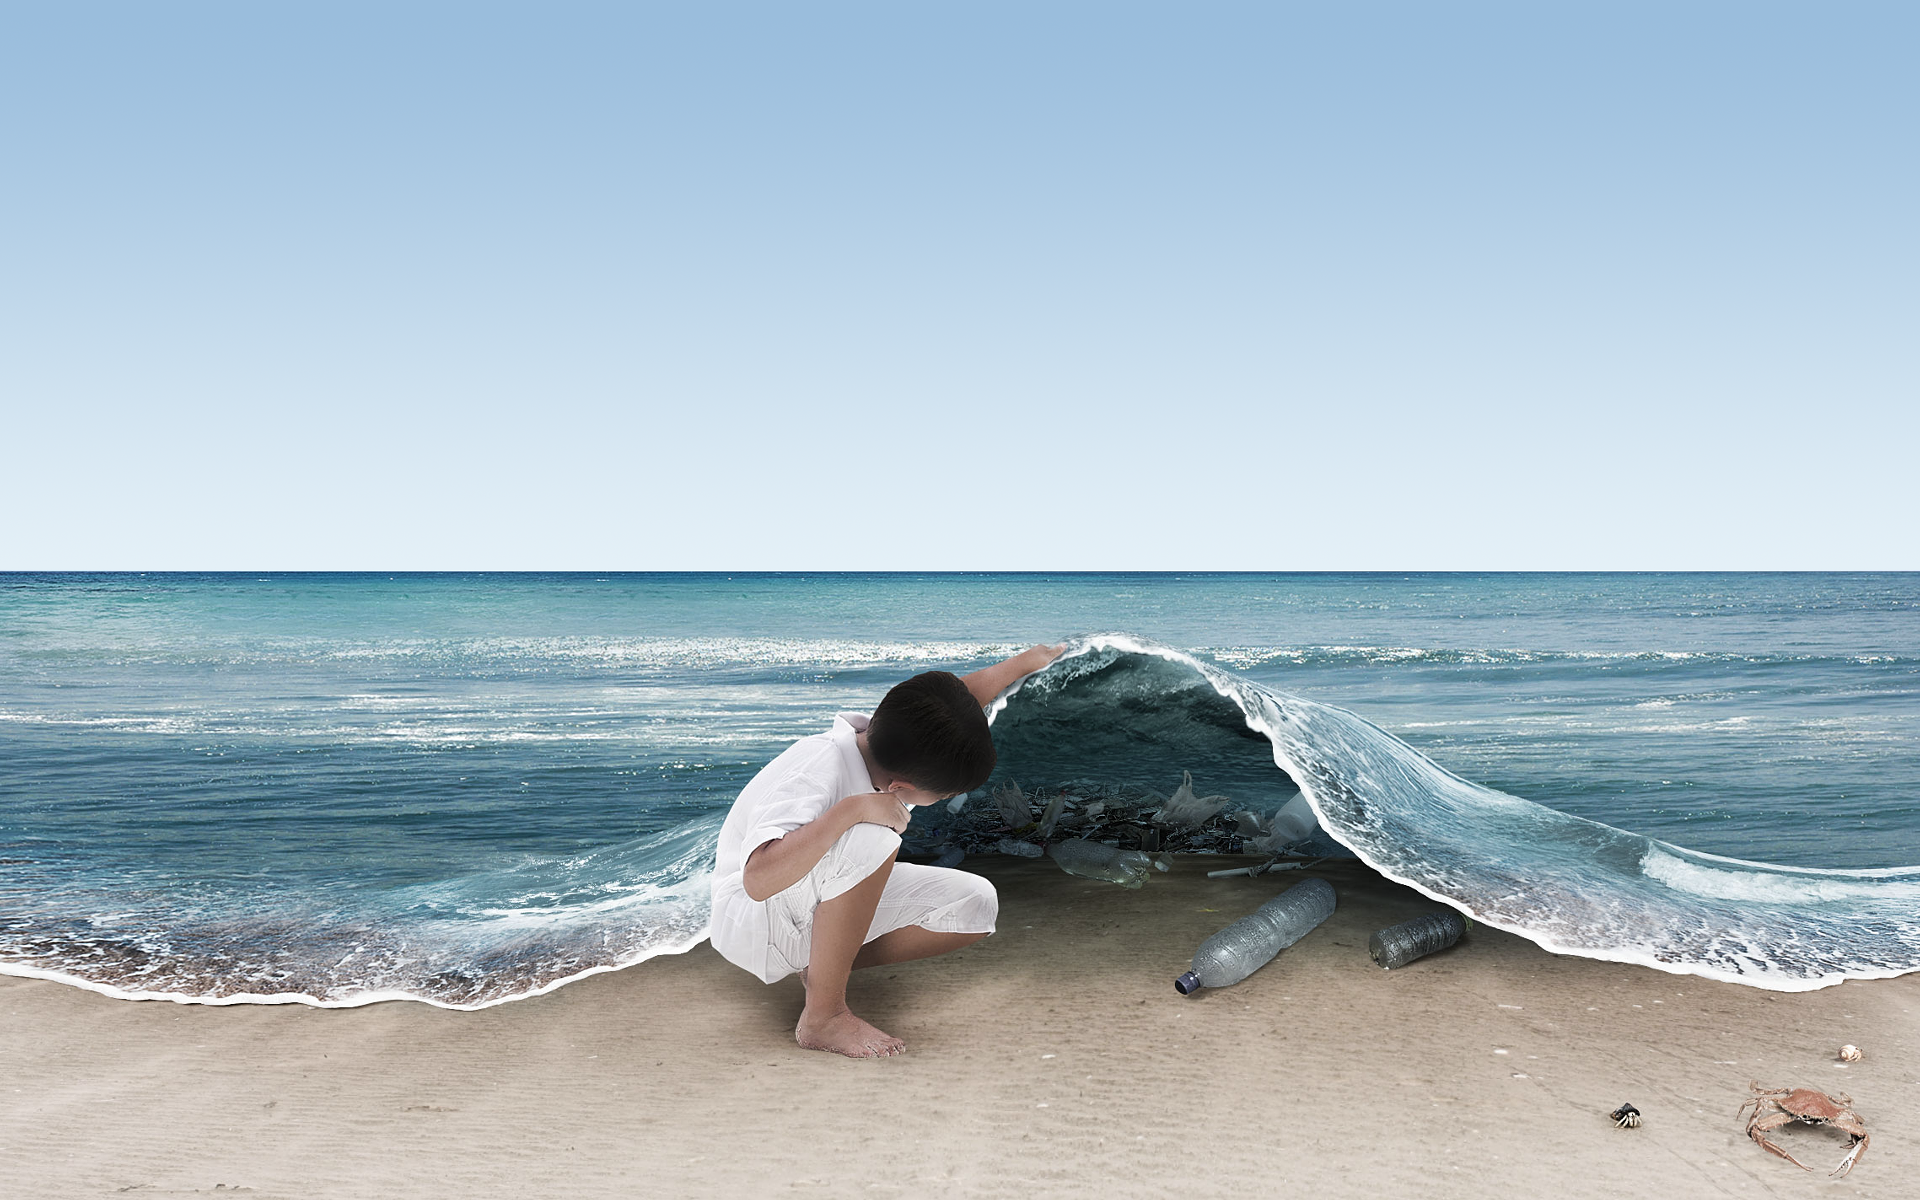 really awesome but fake ocean scene artistic and creative